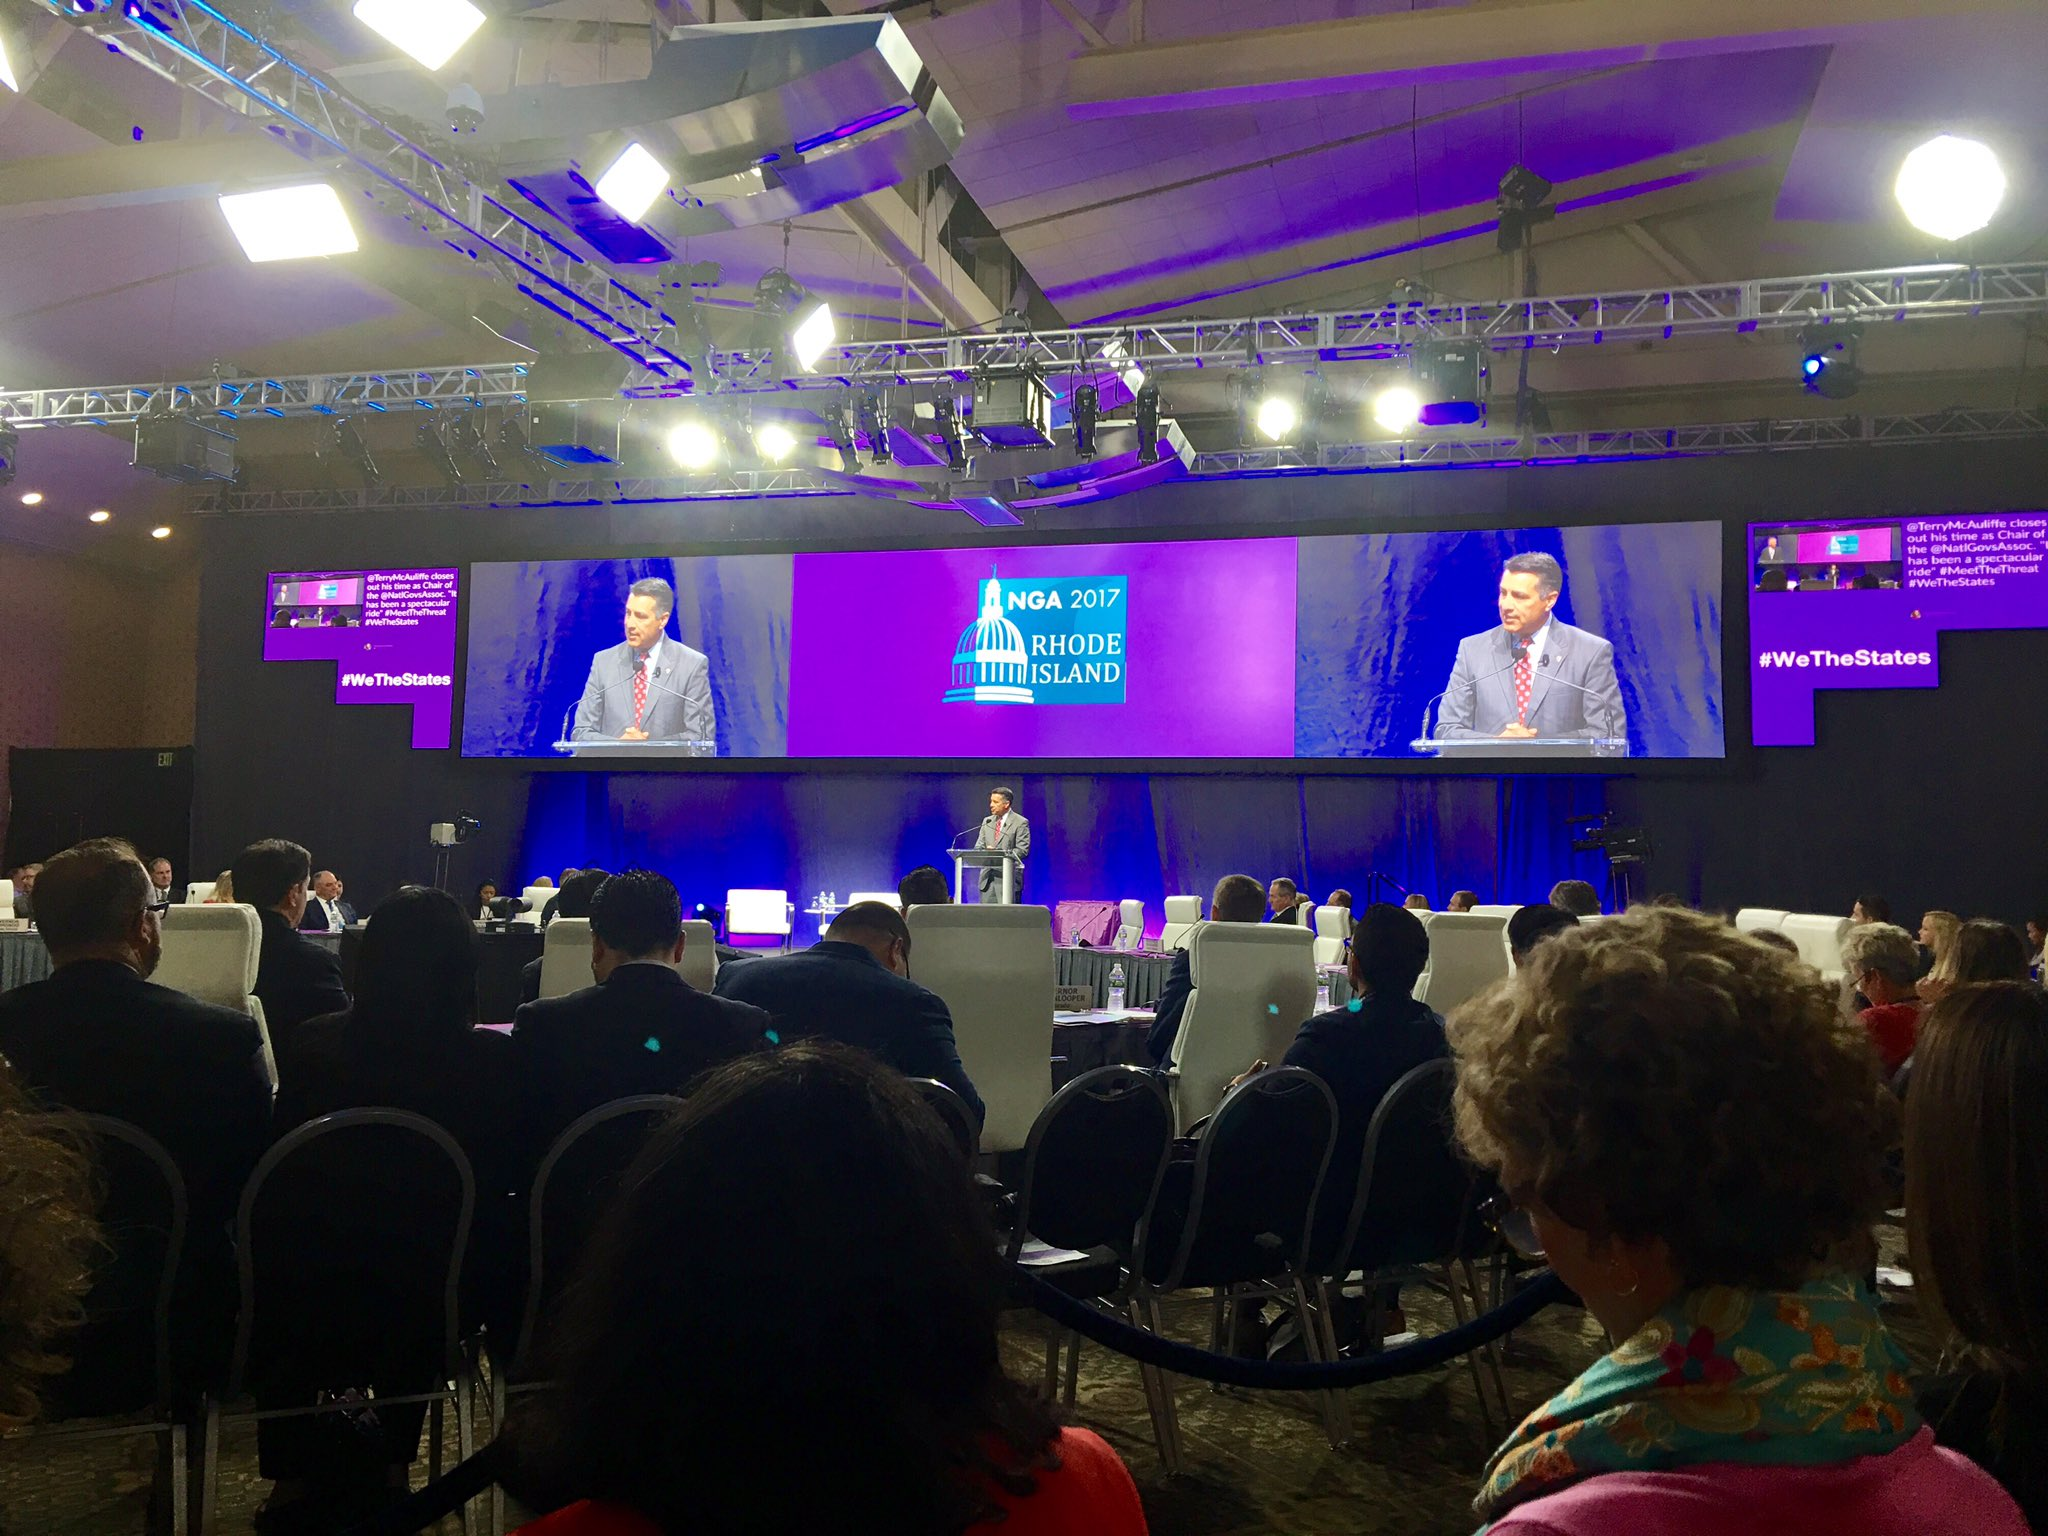 @TerryMcAuliffe hands the gavel to new chair @BrianSandoval via drone delivery! #WeTheStates @NatlGovsAssoc https://t.co/g2OSa28zQS